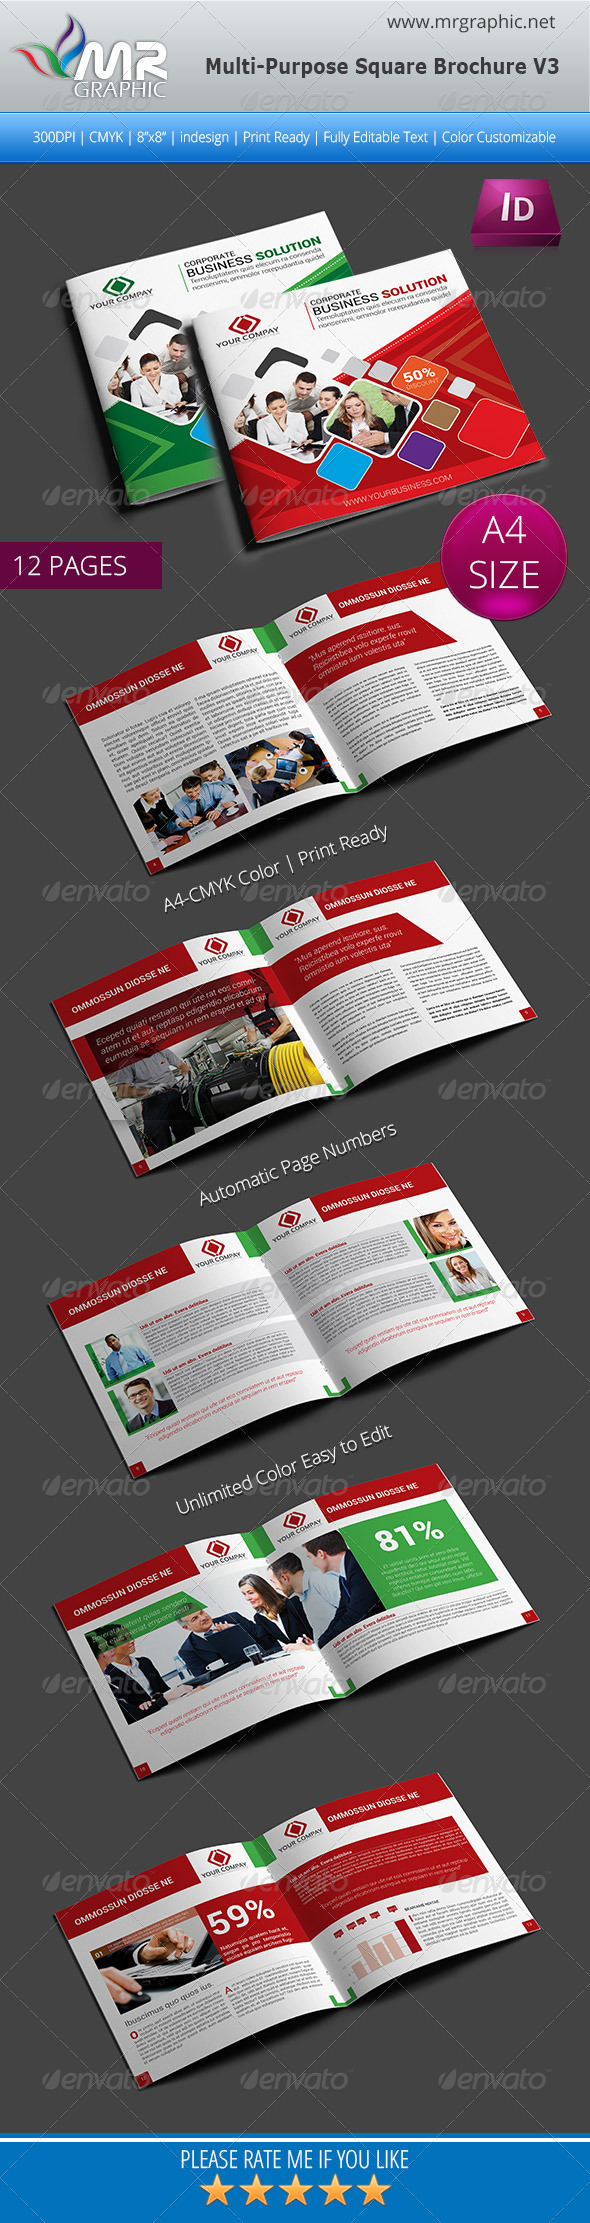 GraphicRiver Multipurpose Square Brochure Template Vol-03 5507606